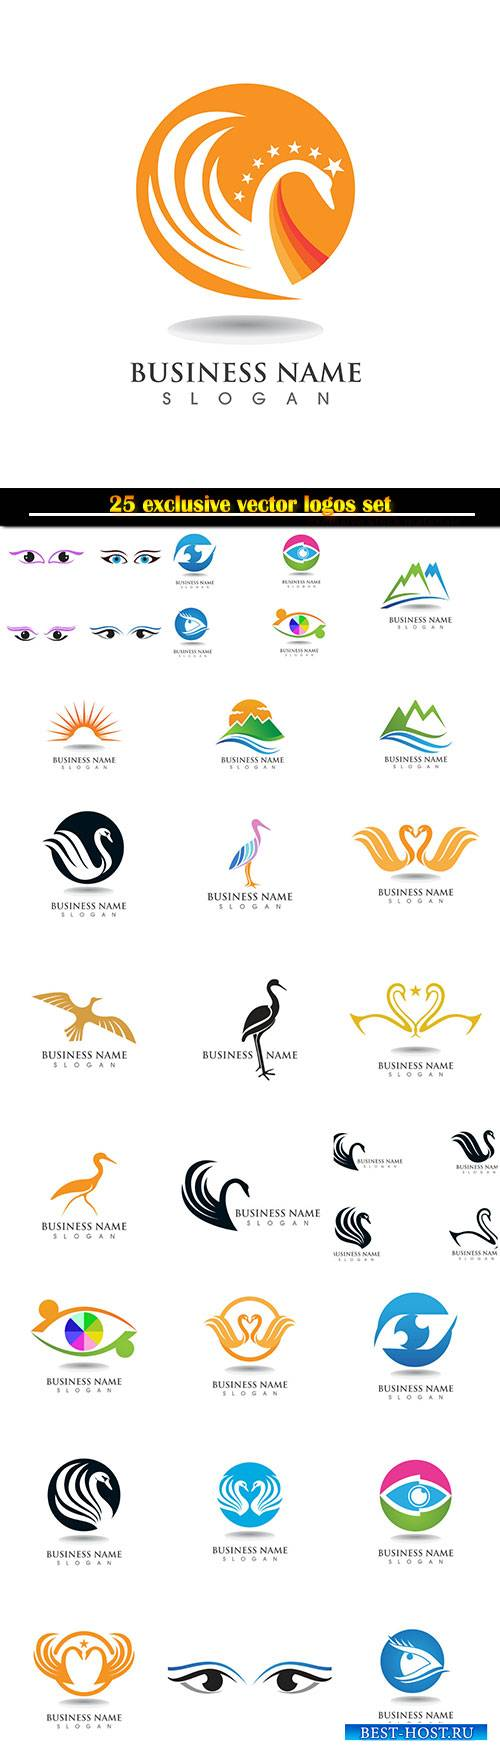 Logo and symbols vector design set